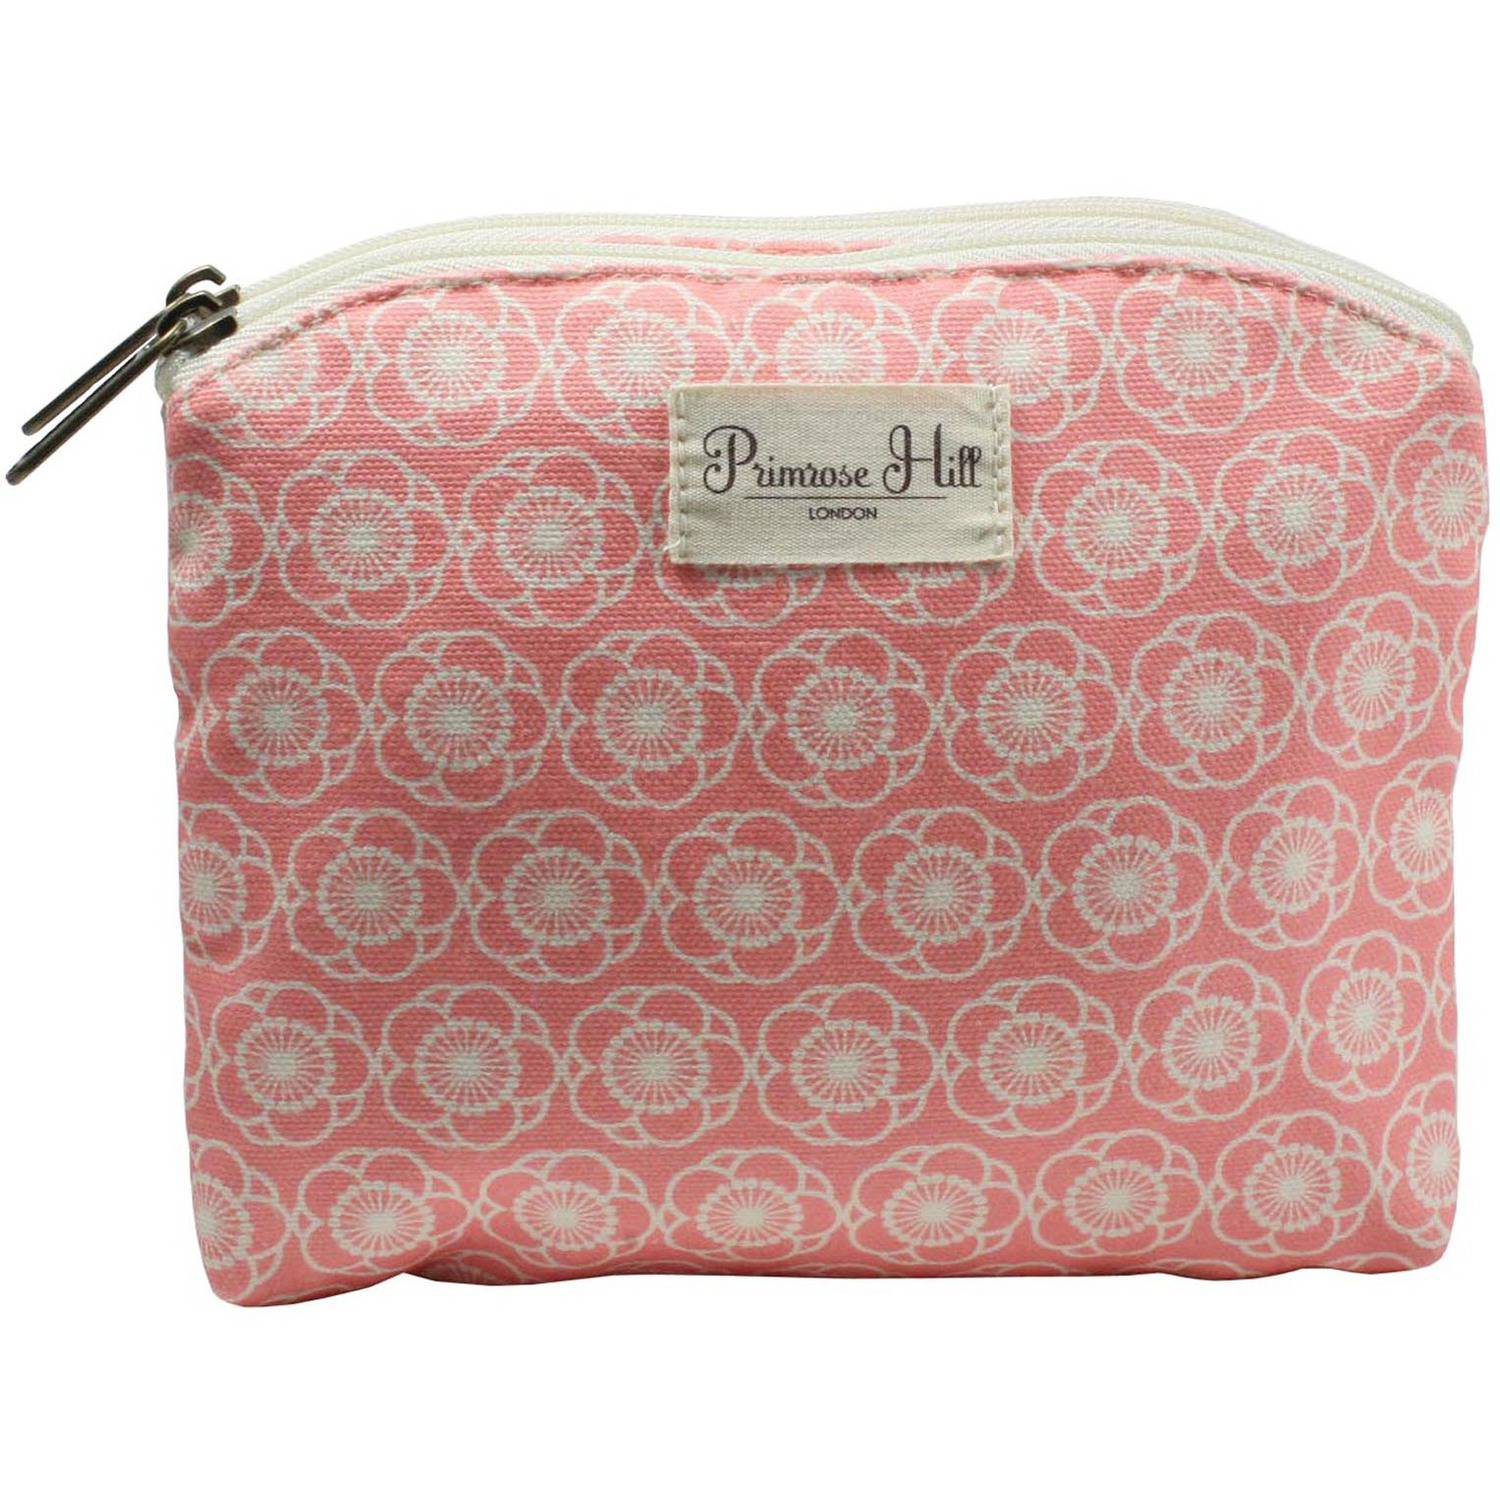 Primrose Hill Double Zip Clutch